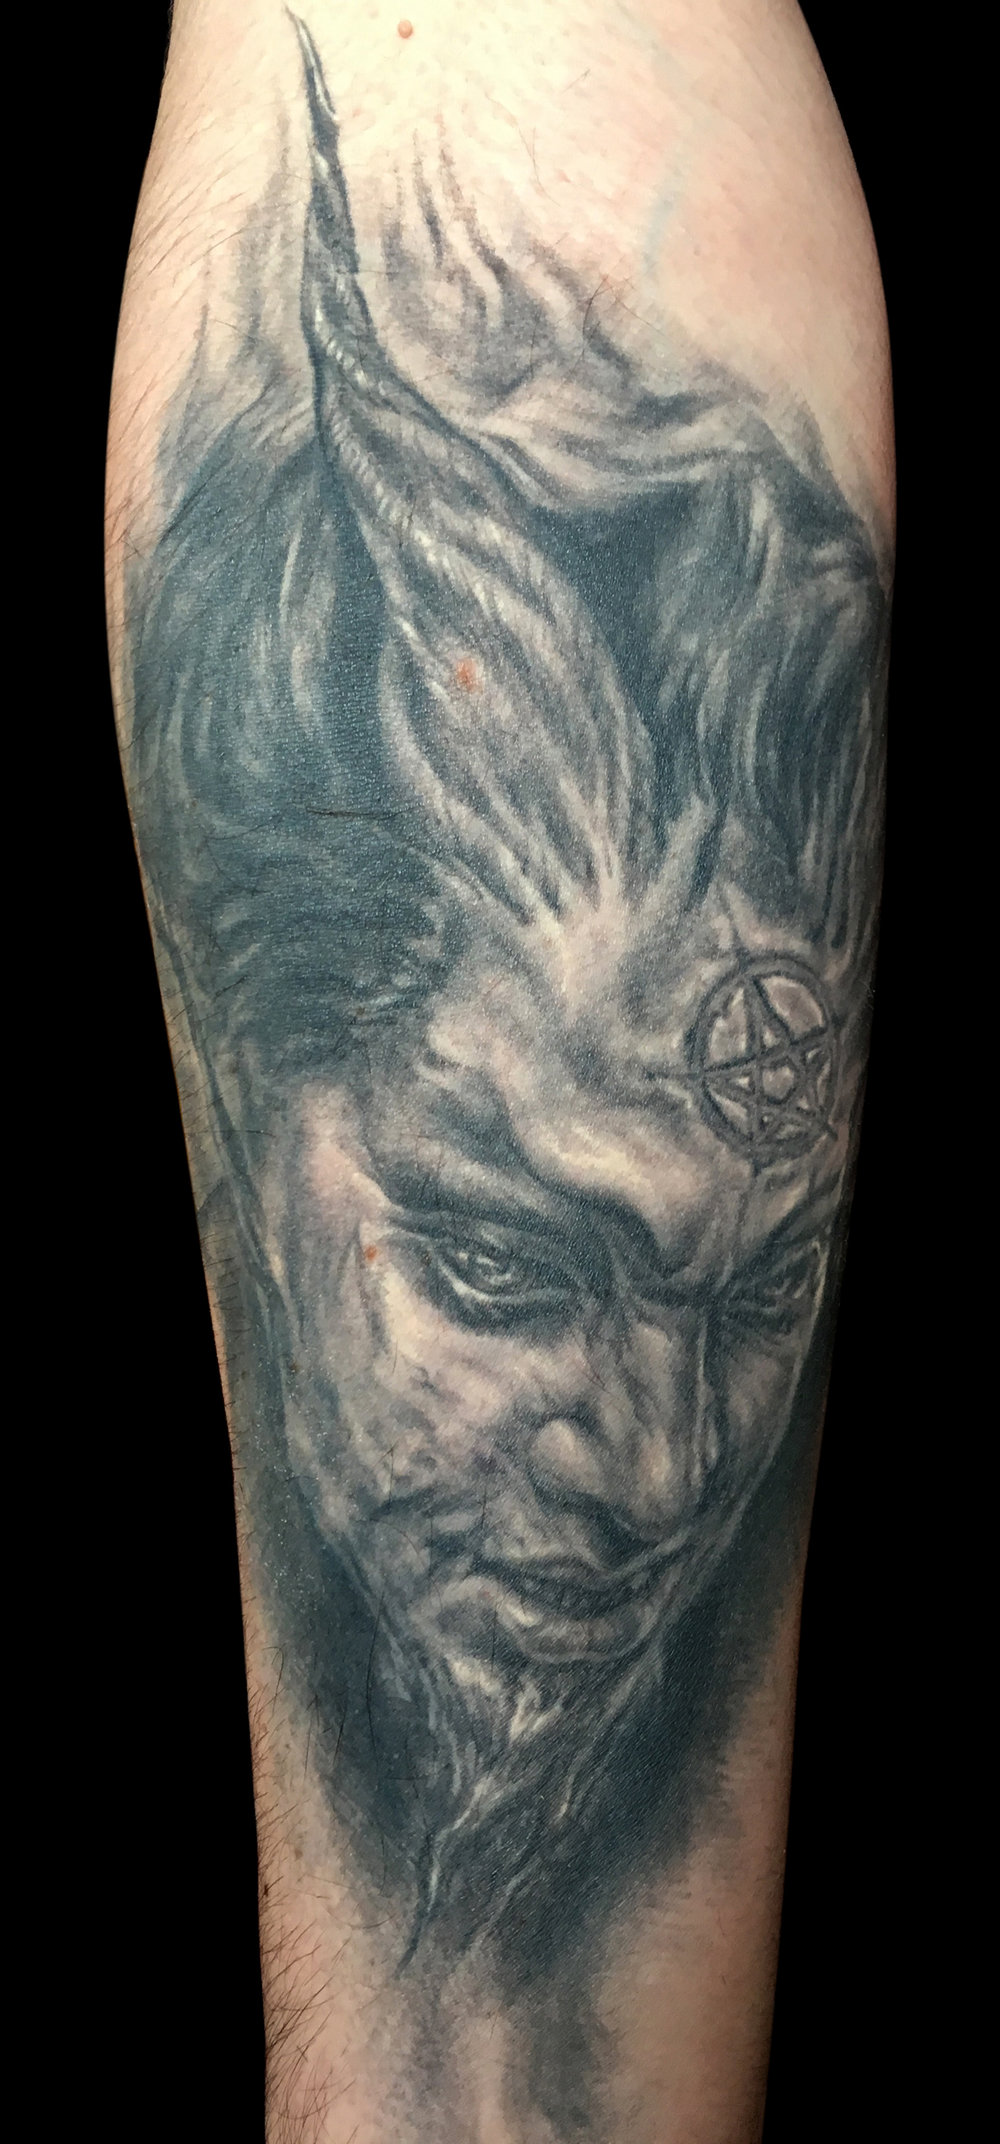 Black and Grey Devil Face Tattoo, (healed) International Brussels Tattoo Convention, Belgium